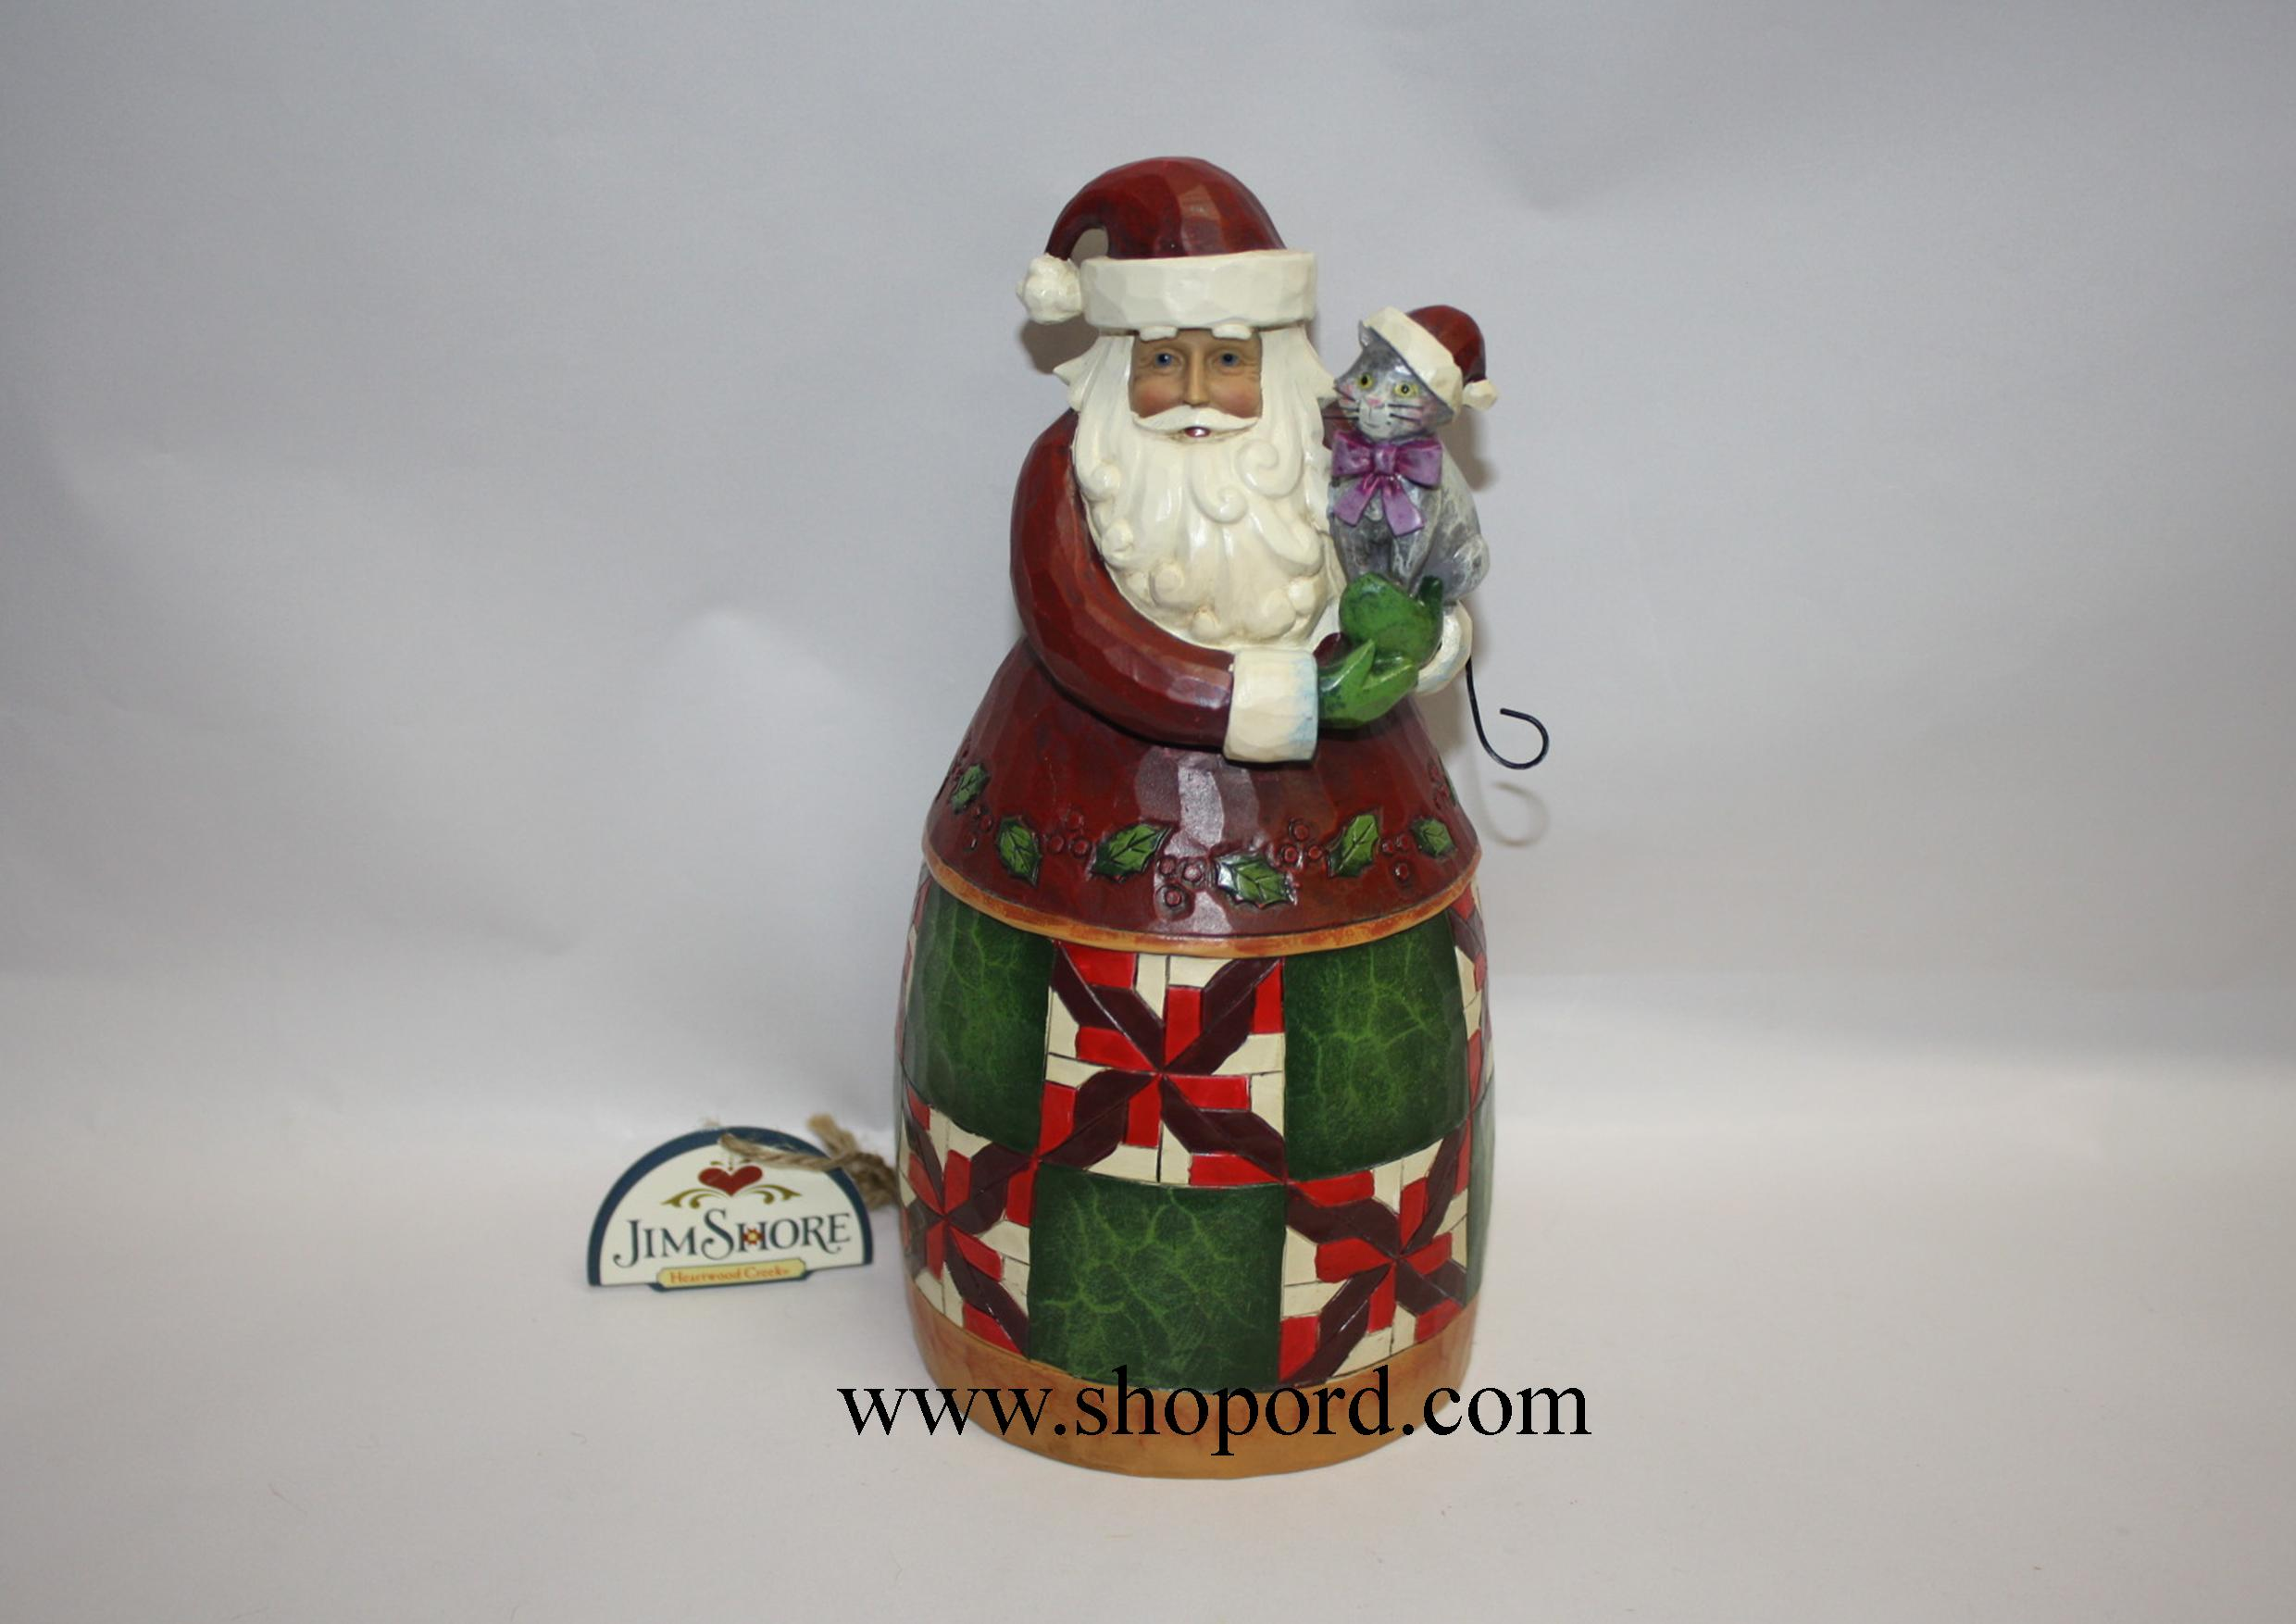 Jim shore christmas cheer is here santa with cat classic figurine